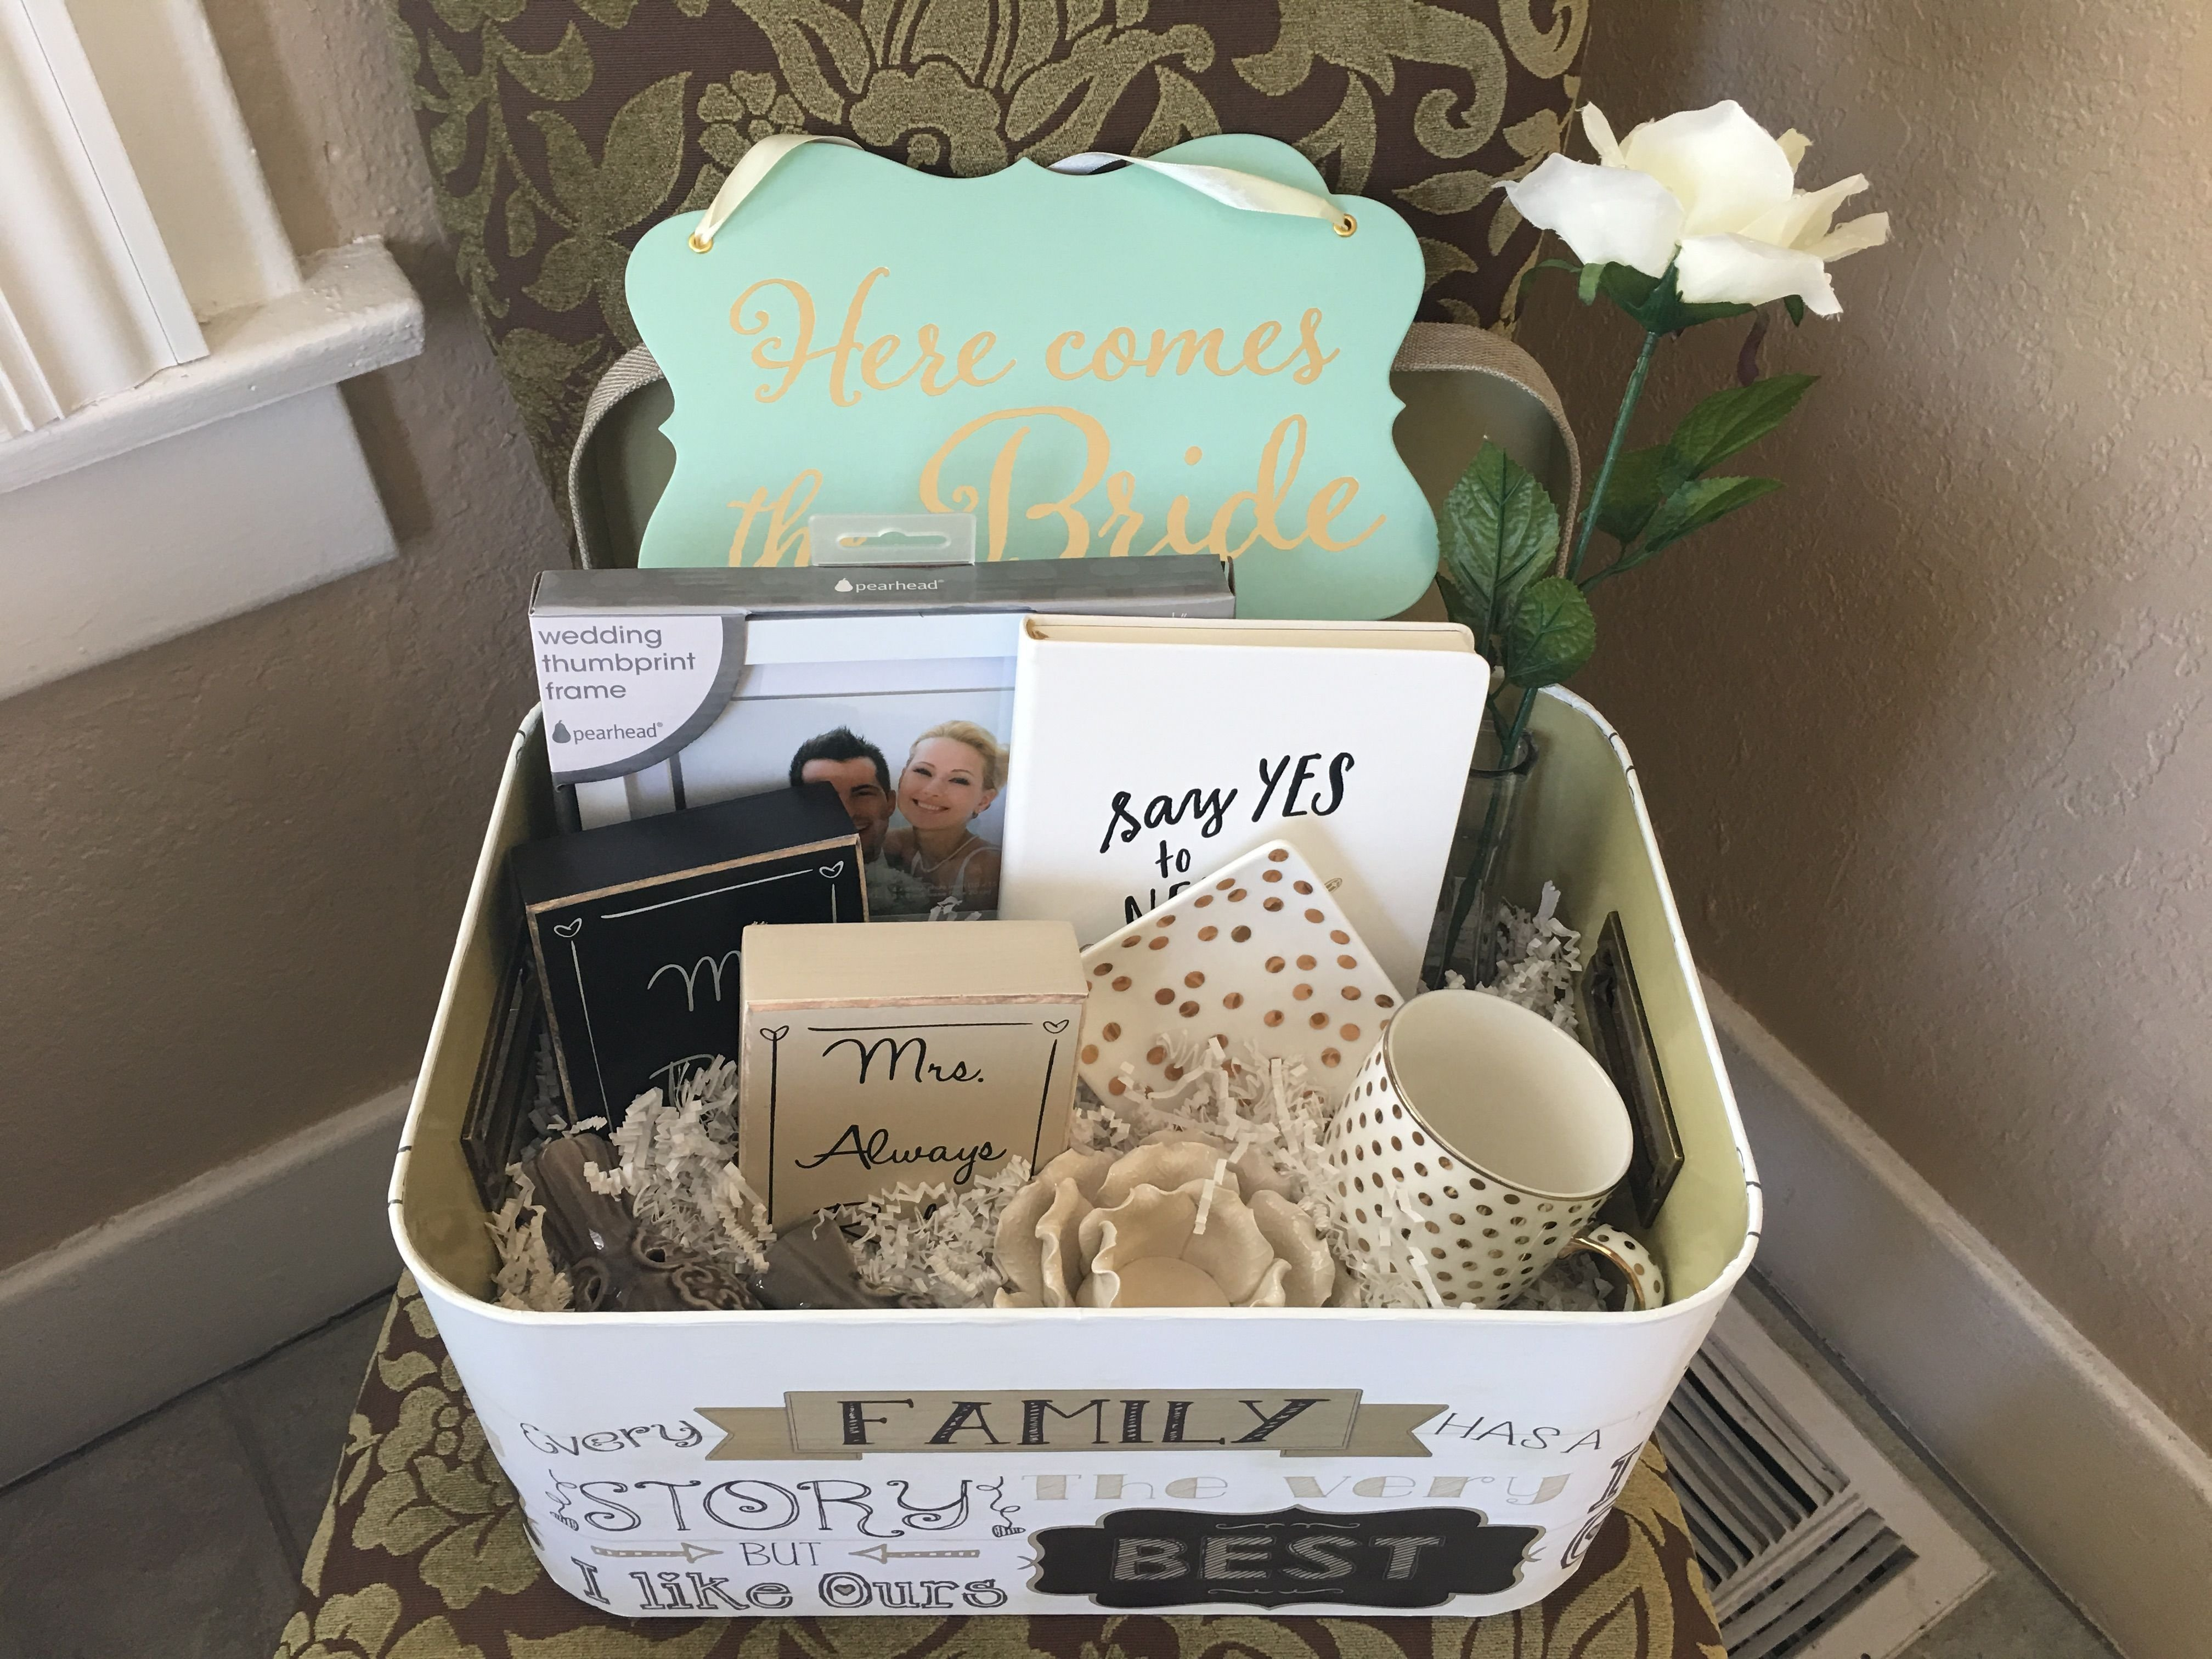 10 Amazing Bed Bath And Beyond Gift Ideas diy engagement gift basket items from bed bath and beyond hobby